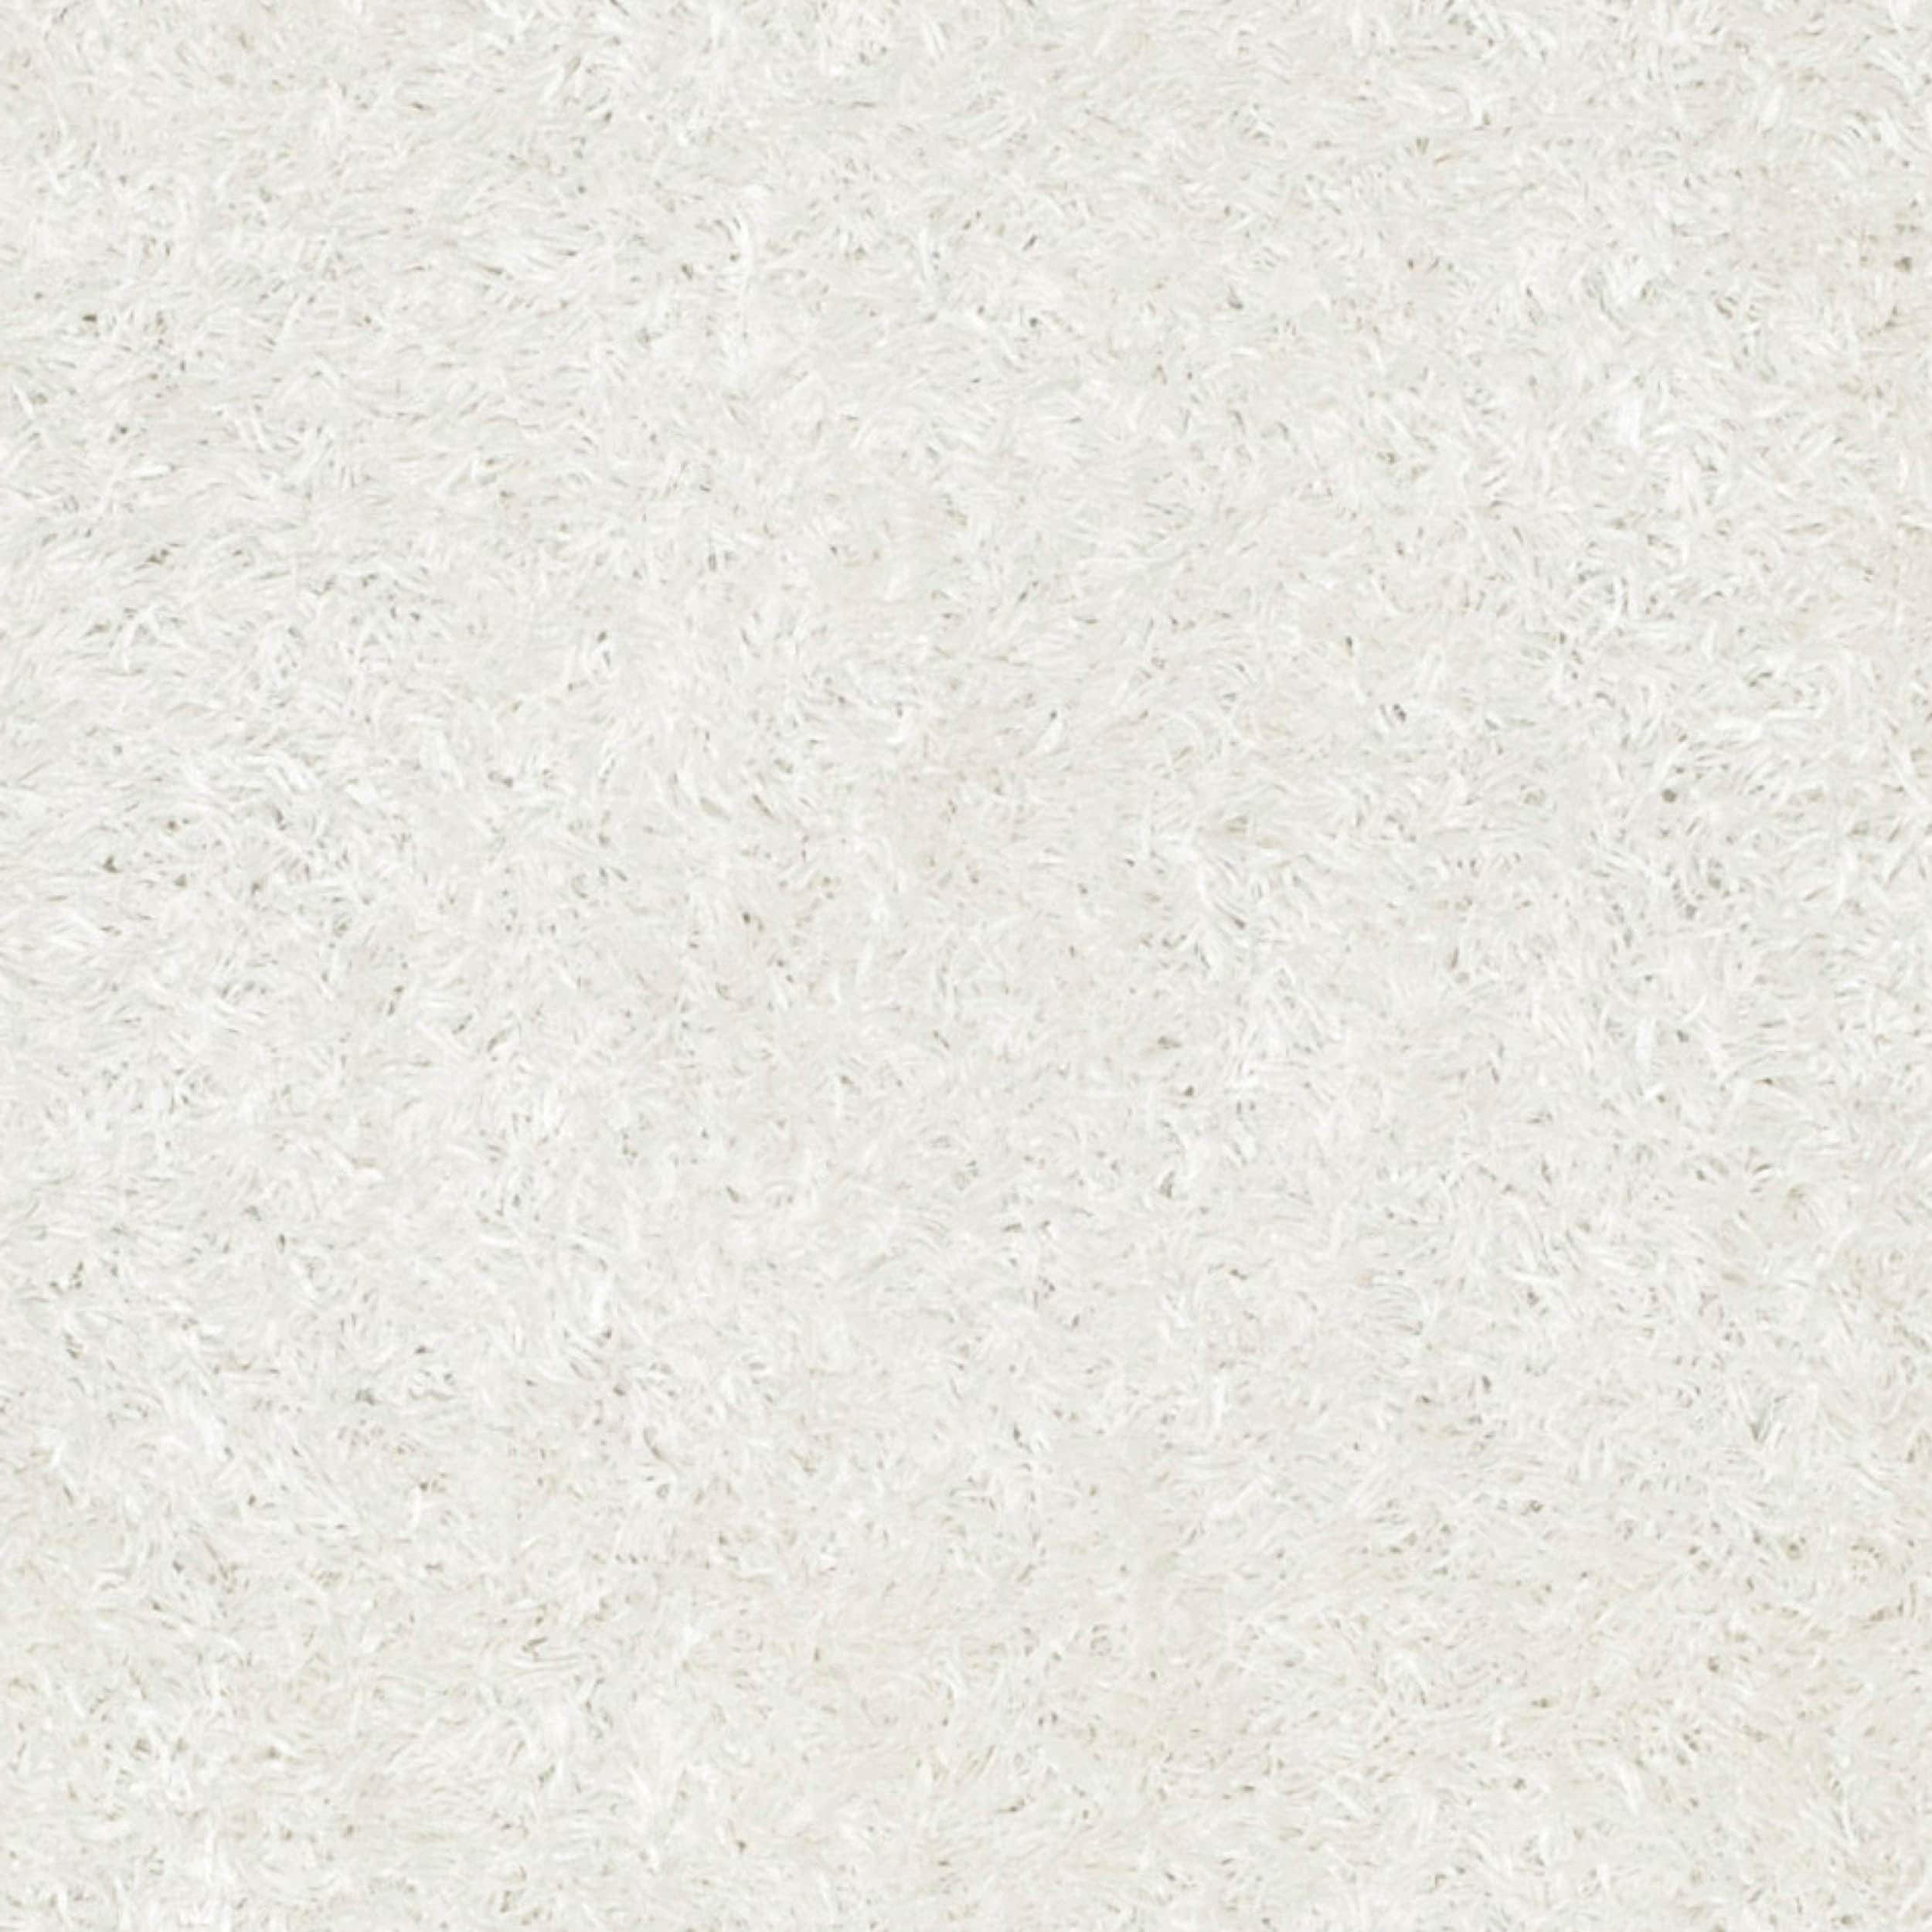 white rug texture. Plain White Shop Safavieh Handmade New Orleans Shag OffWhite Textured Polyester Area  Rug  8u0027 X 10u0027 On Sale Free Shipping Today Overstockcom 5953973 To White Texture I